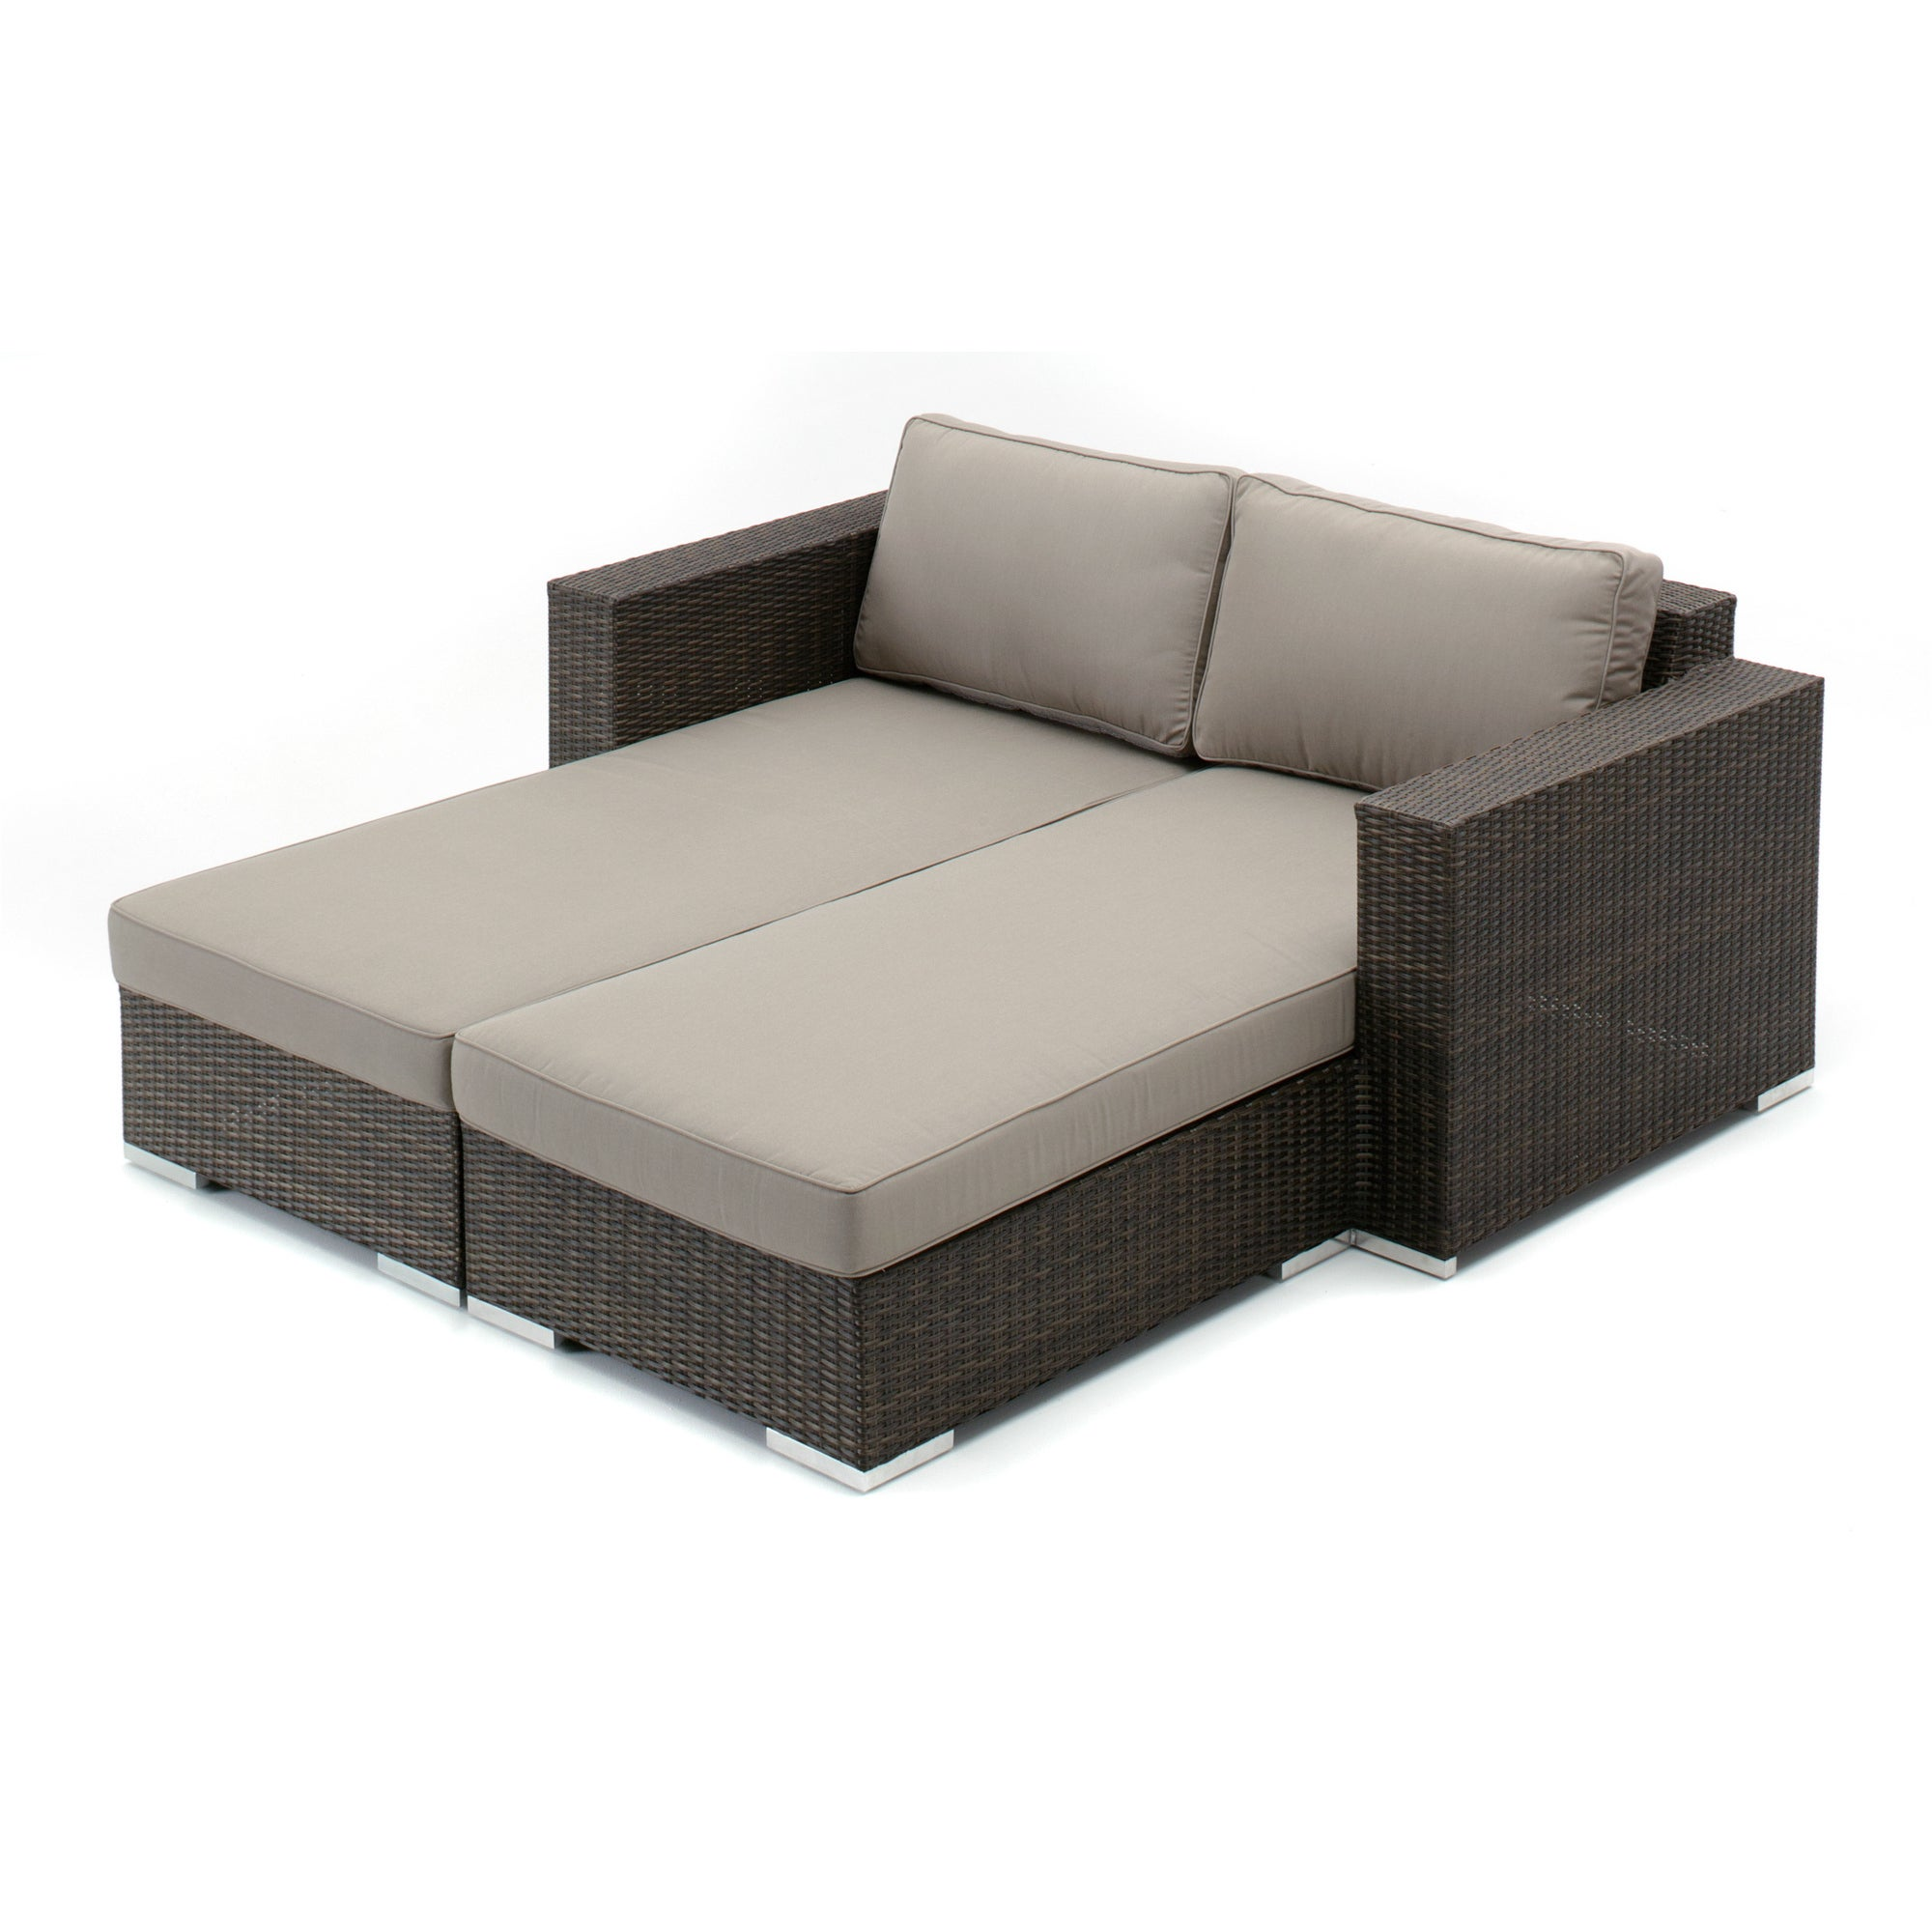 Decorative Modern Outdoor Double Chaise Lounge Overstock 10422928